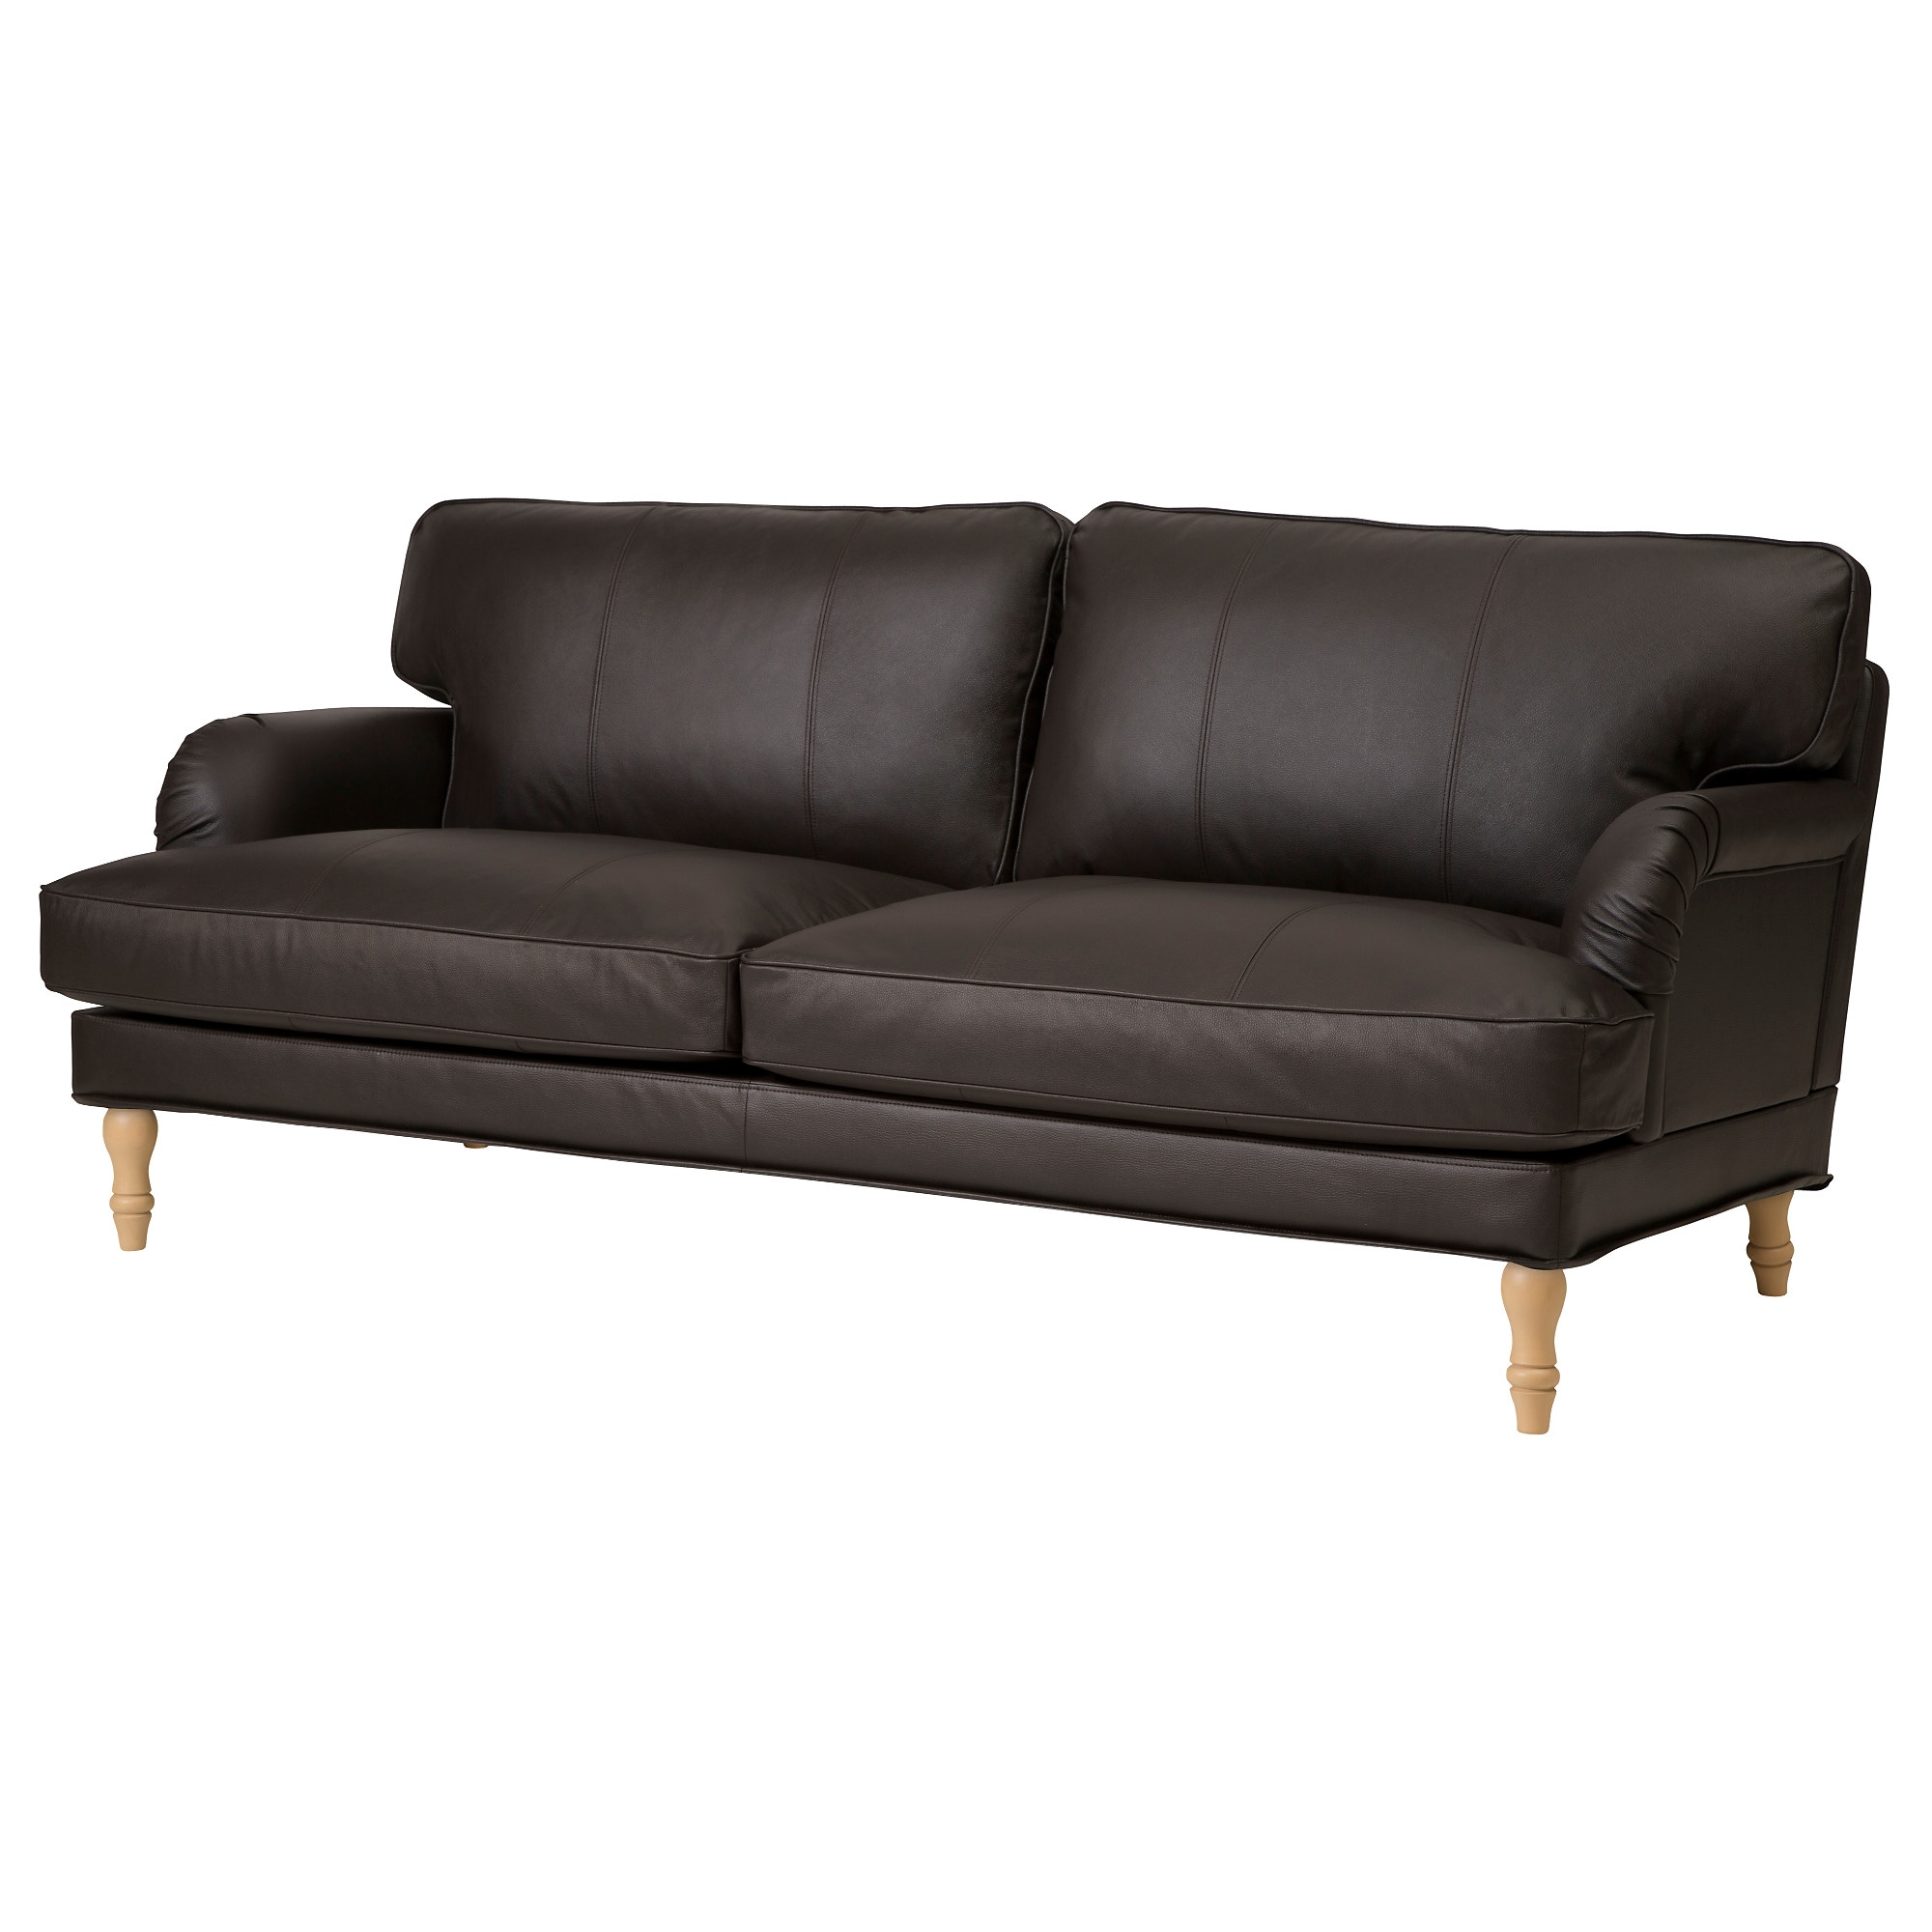 Beautiful STOCKSUND Sofa, Grann/Bomstad Brown, Light Brown/wood Width: 78 3